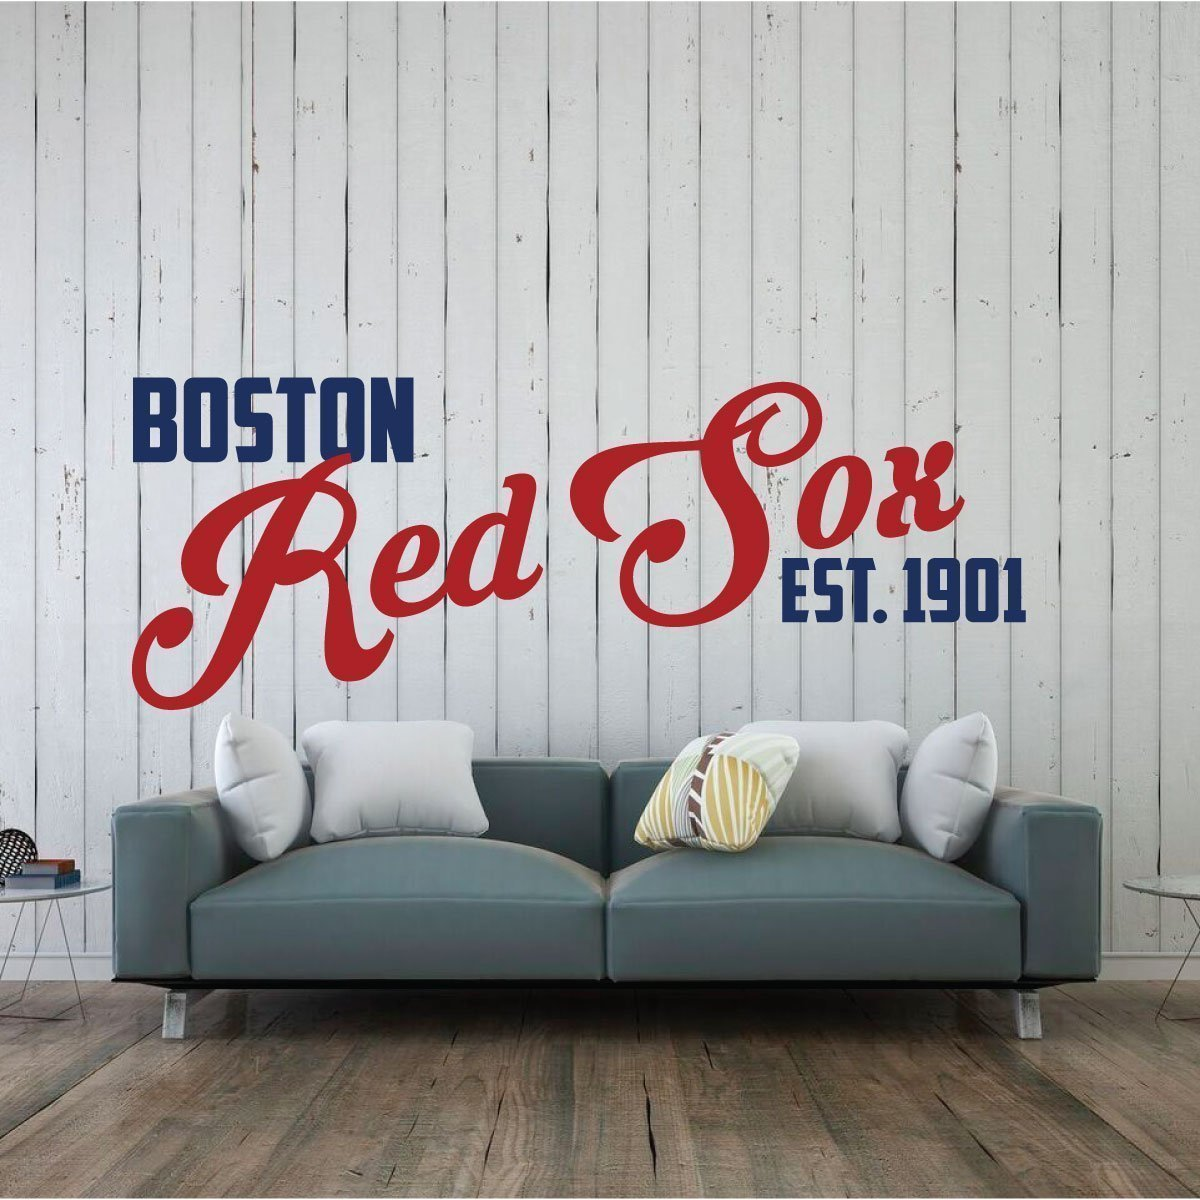 Red Sox Wall Decal - Boston Baseball Decorations - Sports Team Athlete Bedroom Decor - Vinyl Wall Decal - MLB Wall Decals for Bedrooms, Playroom, Dorm or Home - ManCave Wall Decor.